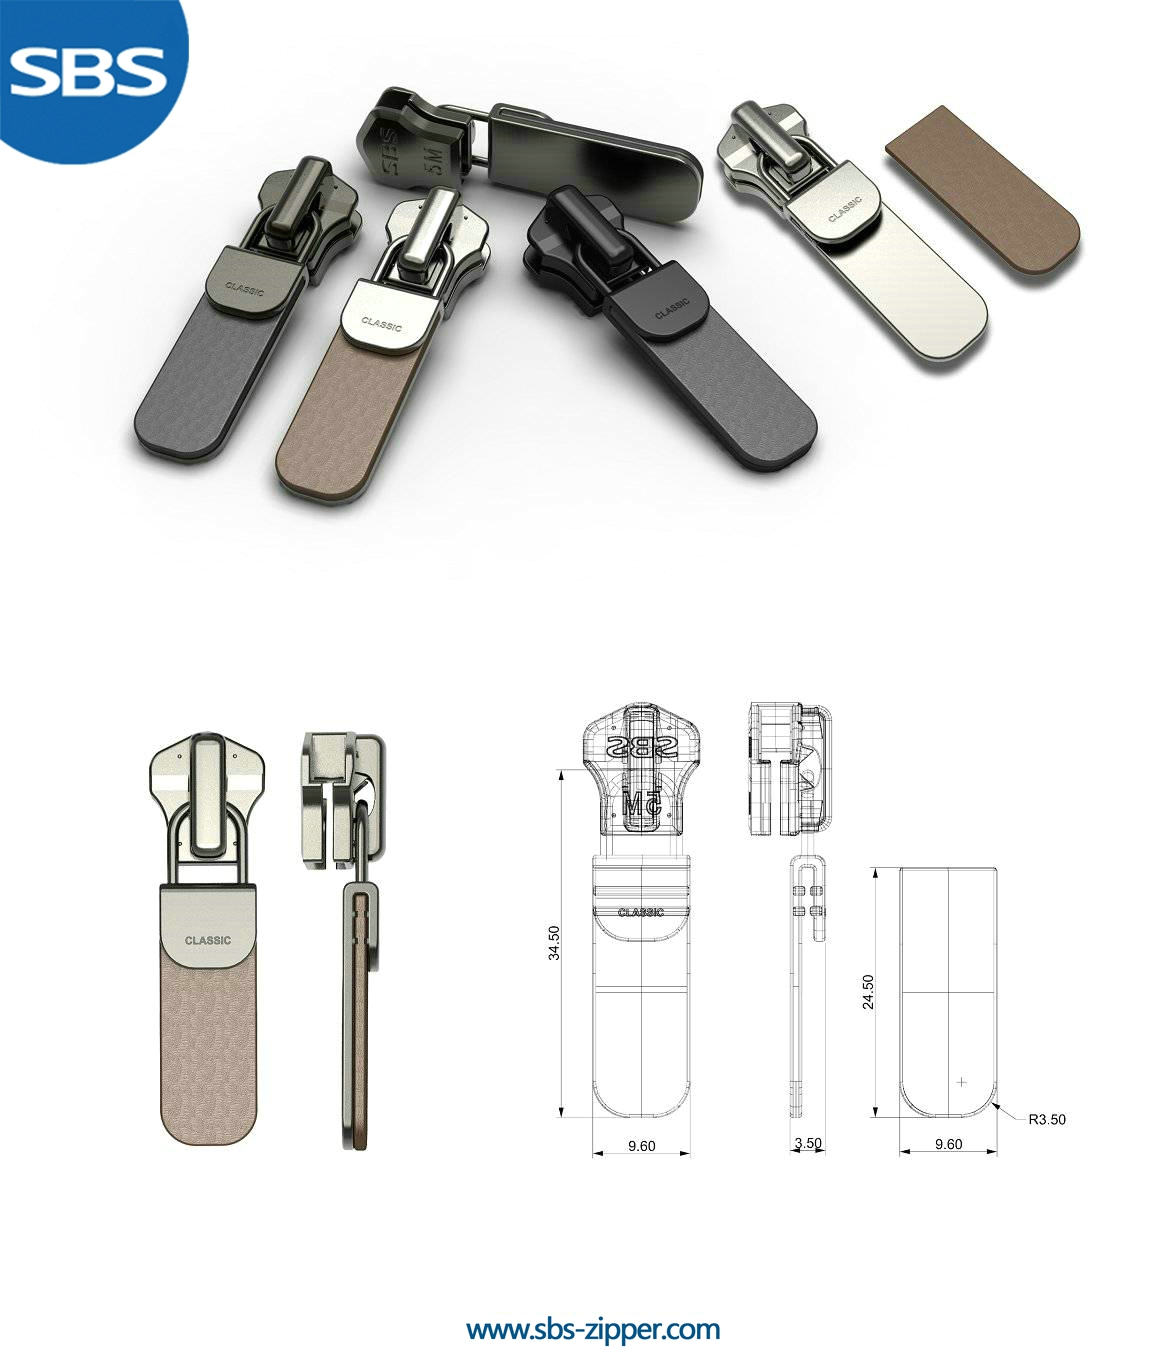 Customized Zipper Pulls Supplier 16AMC020 | SBS Zipper